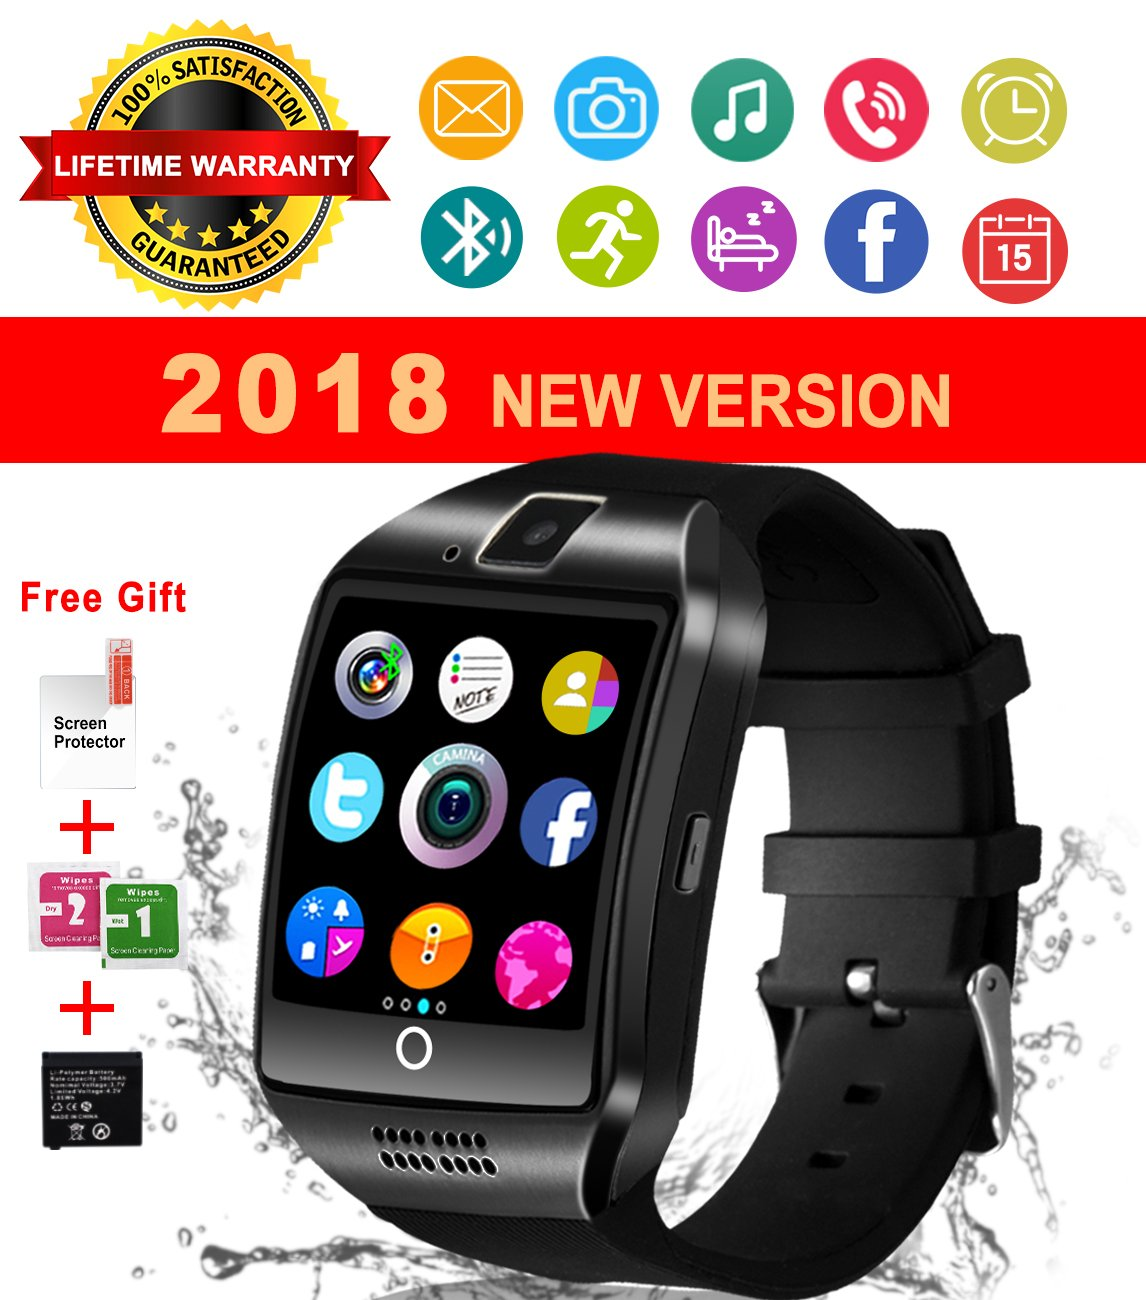 Bluetooth Smart Watch With Camera Waterproof Smartwatch Touch Screen Unlocked Cell Phone Watch Smart Wrist Watch Smart Watches For Android Phones Samsung IOS iPhone 6S 7 7S 8 X Plus (black) by IFUNDA